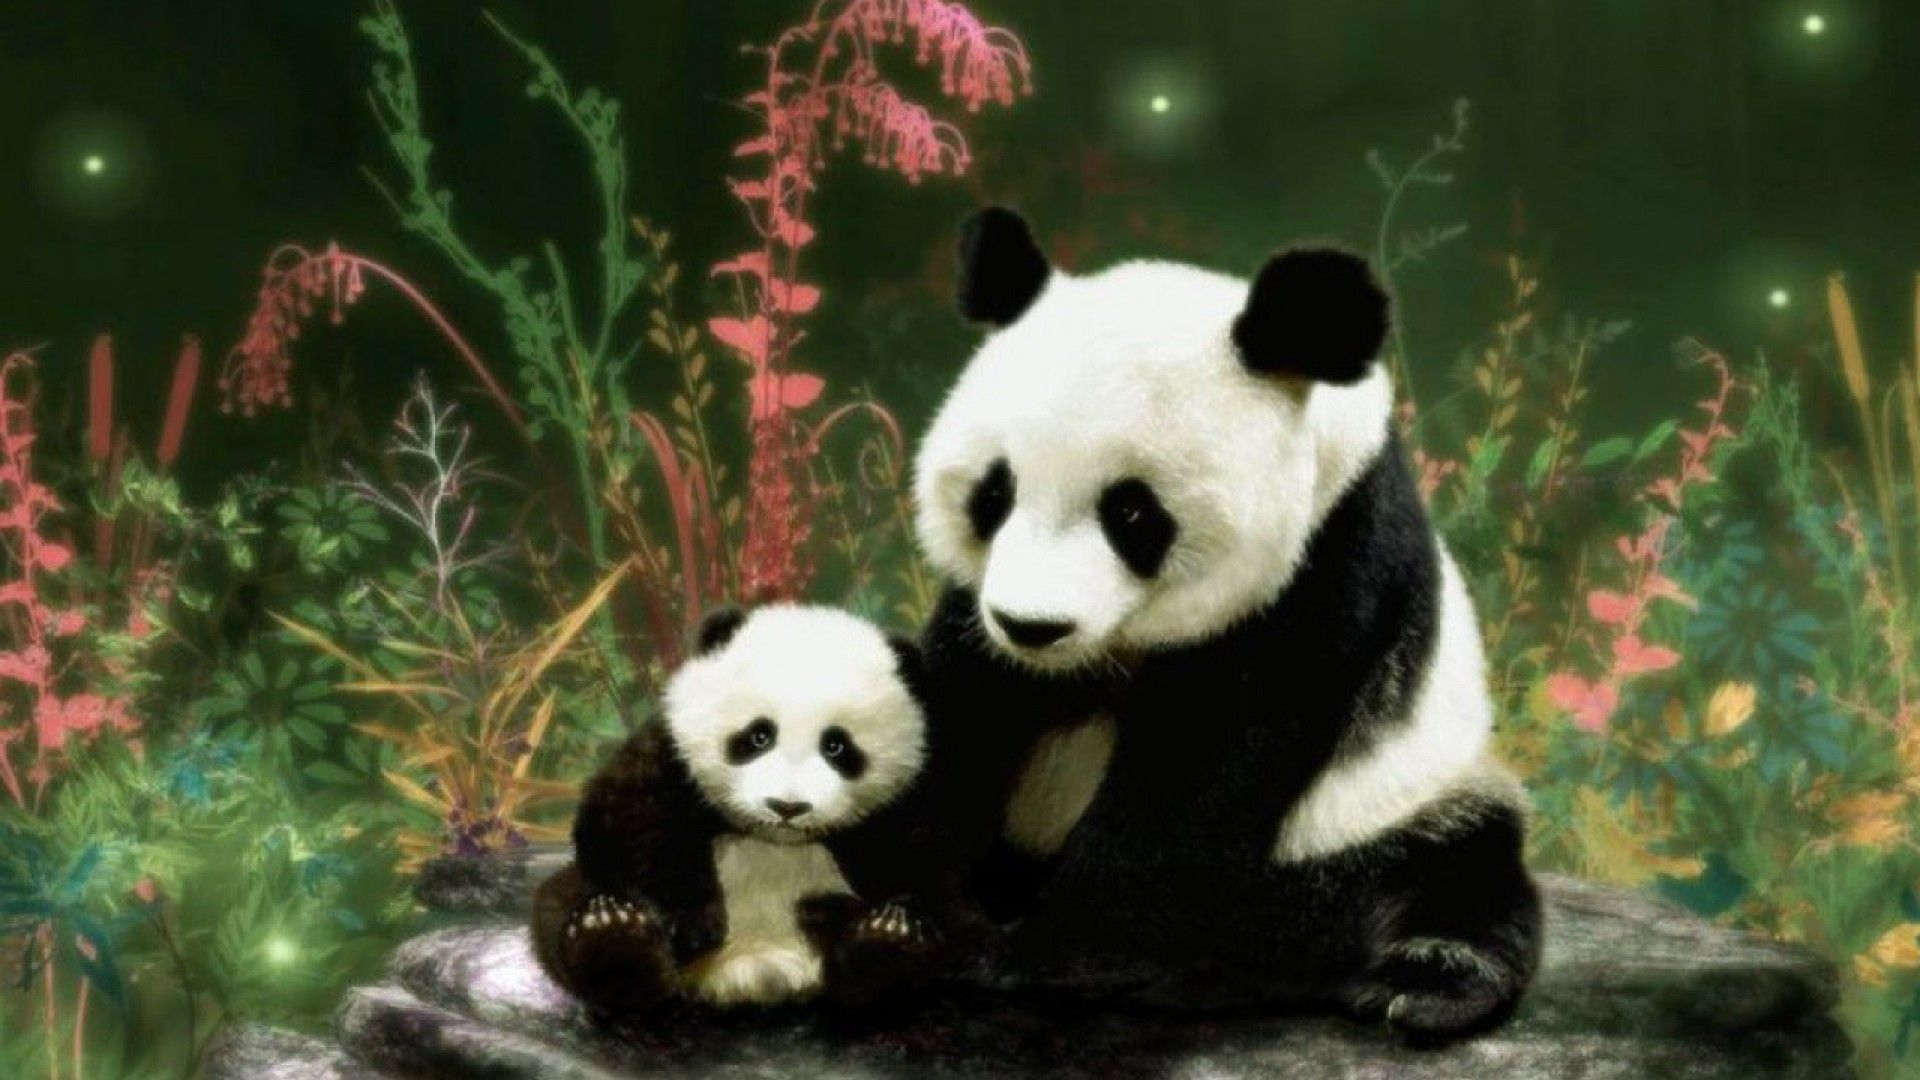 A young panda cub snacks on some bamboo  Voices from Russia   WordPress com